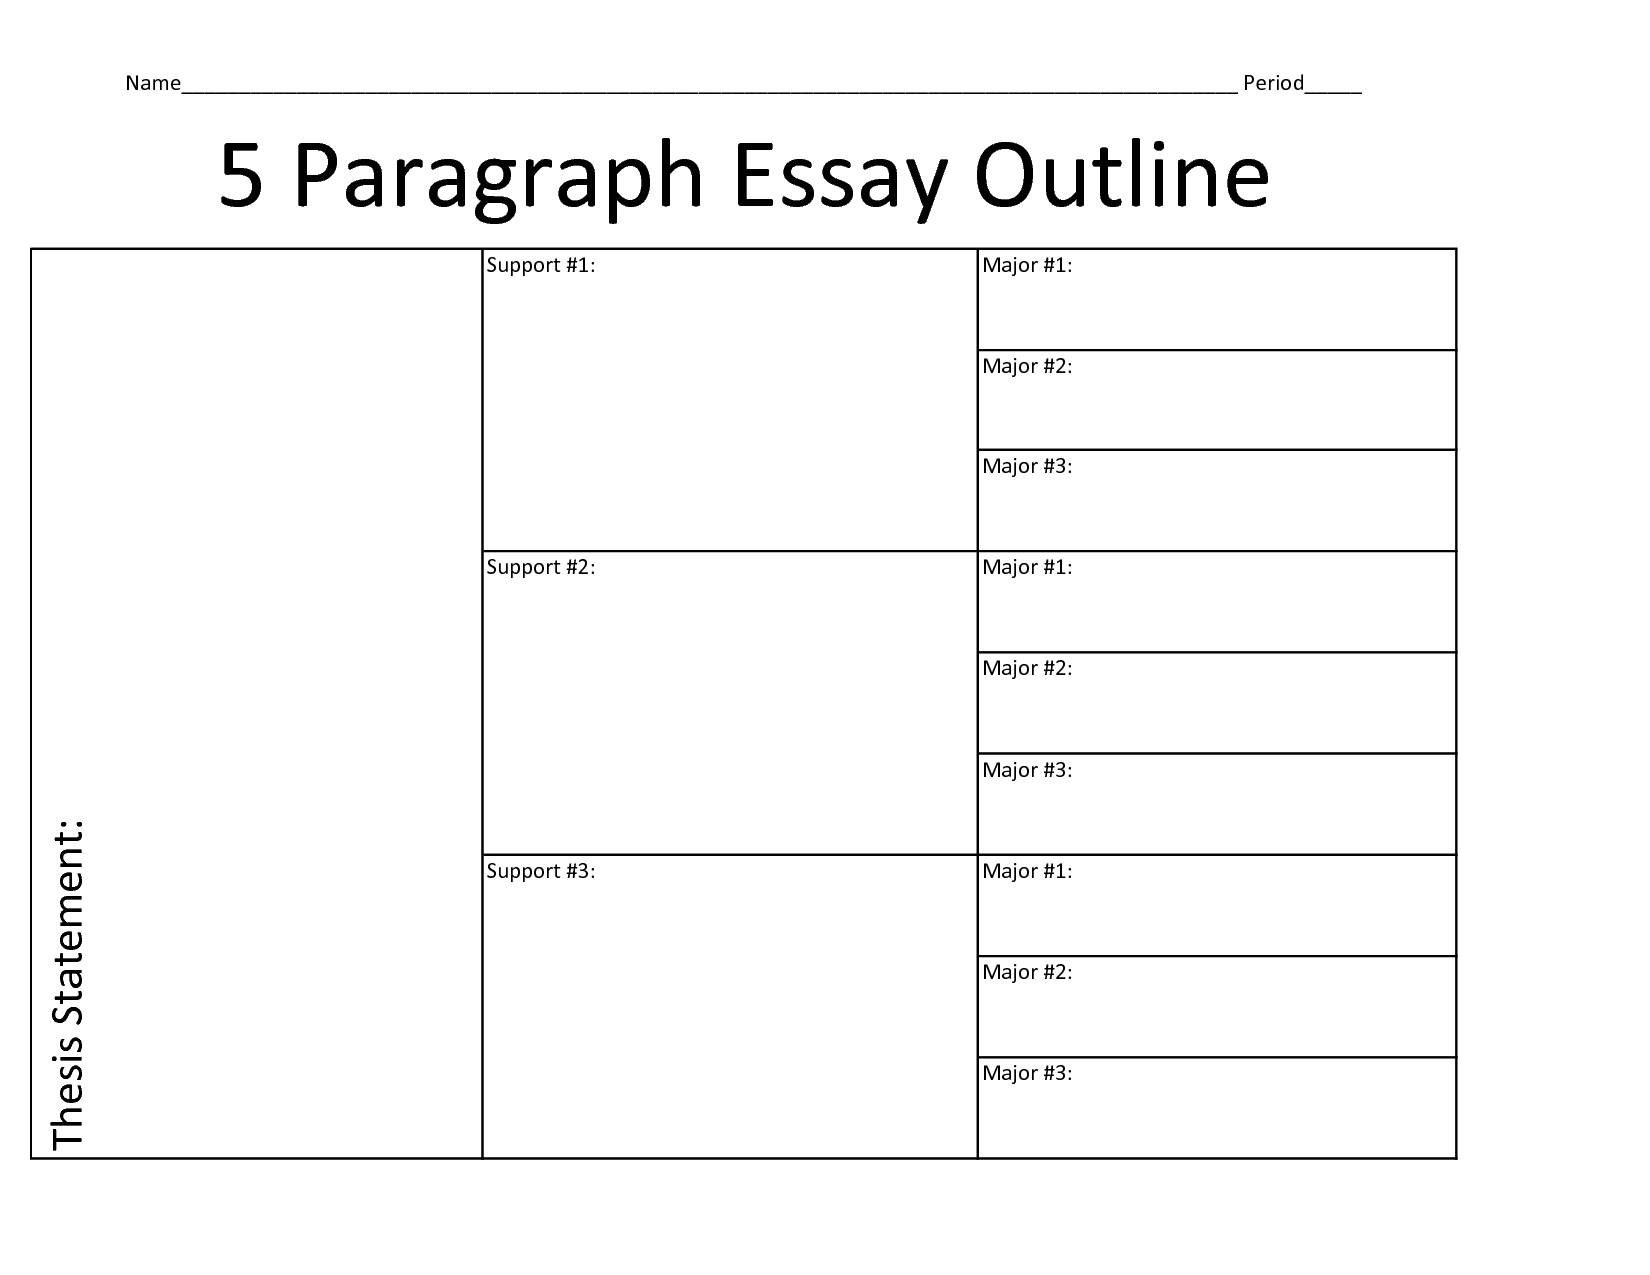 essay outline template | paragraph essay outline- blank | write